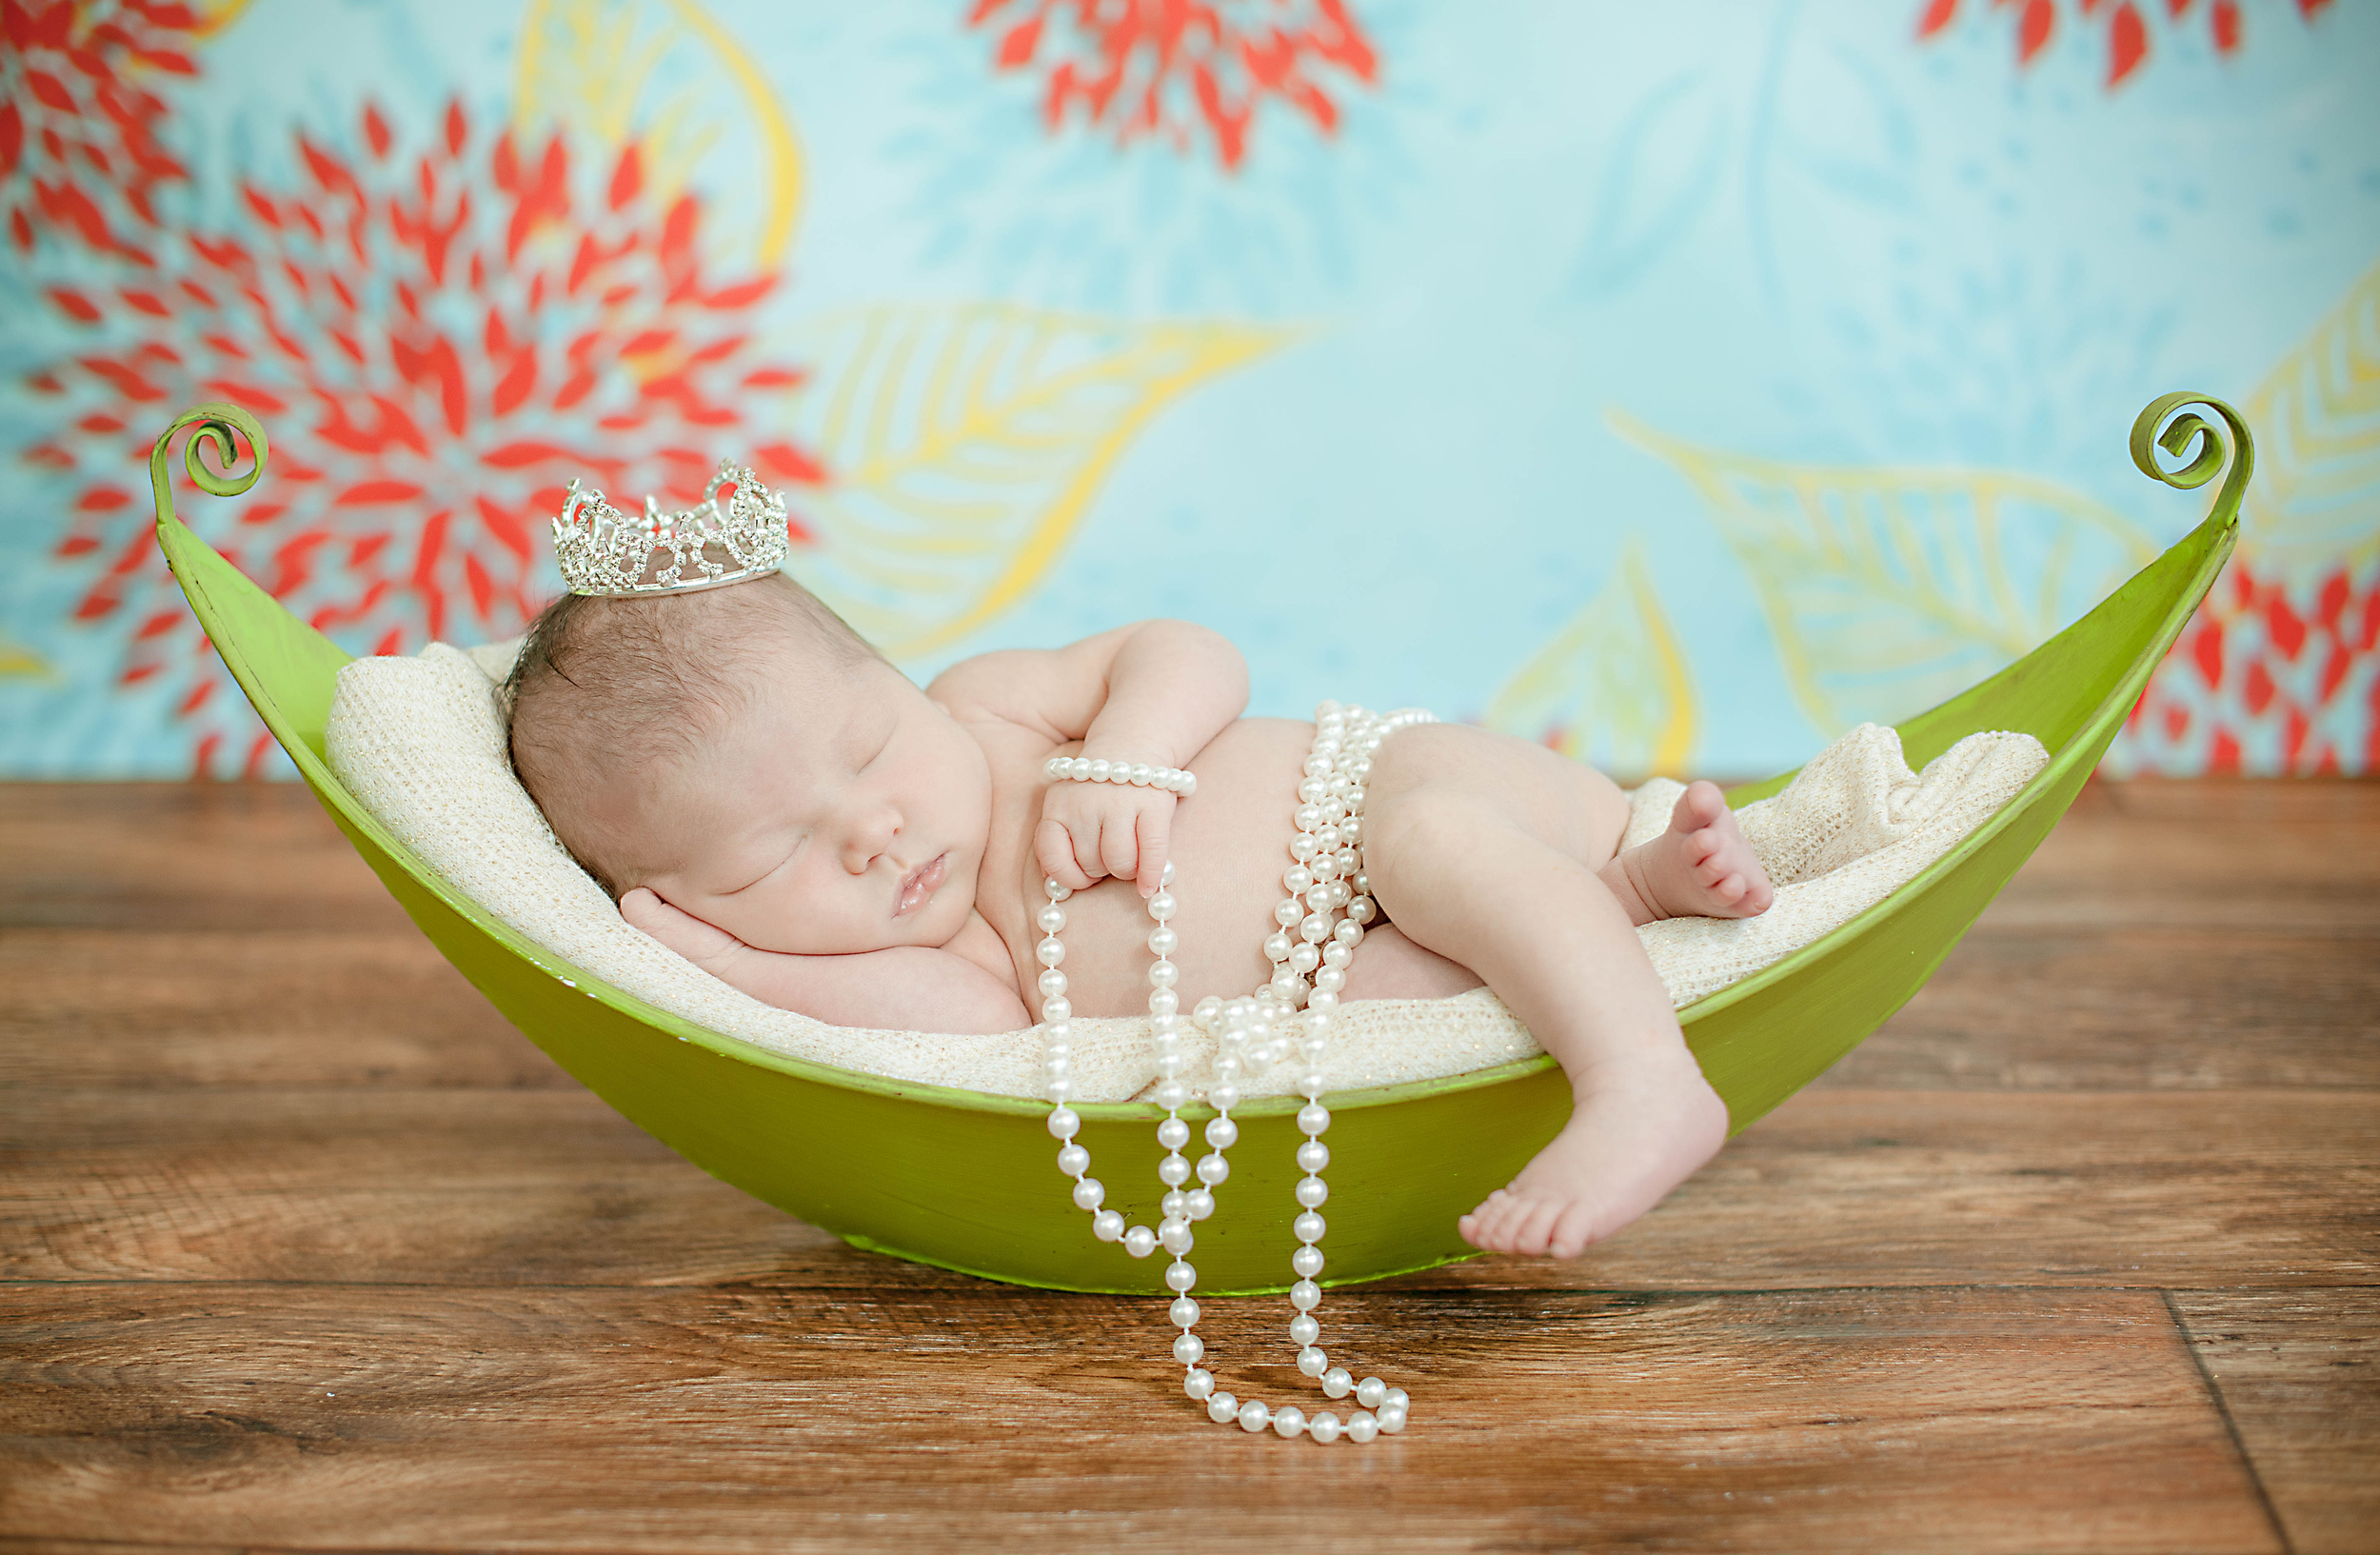 Colorful Newborn Photography Metro Detroit Michigan Photos by Miss Ann.jpg